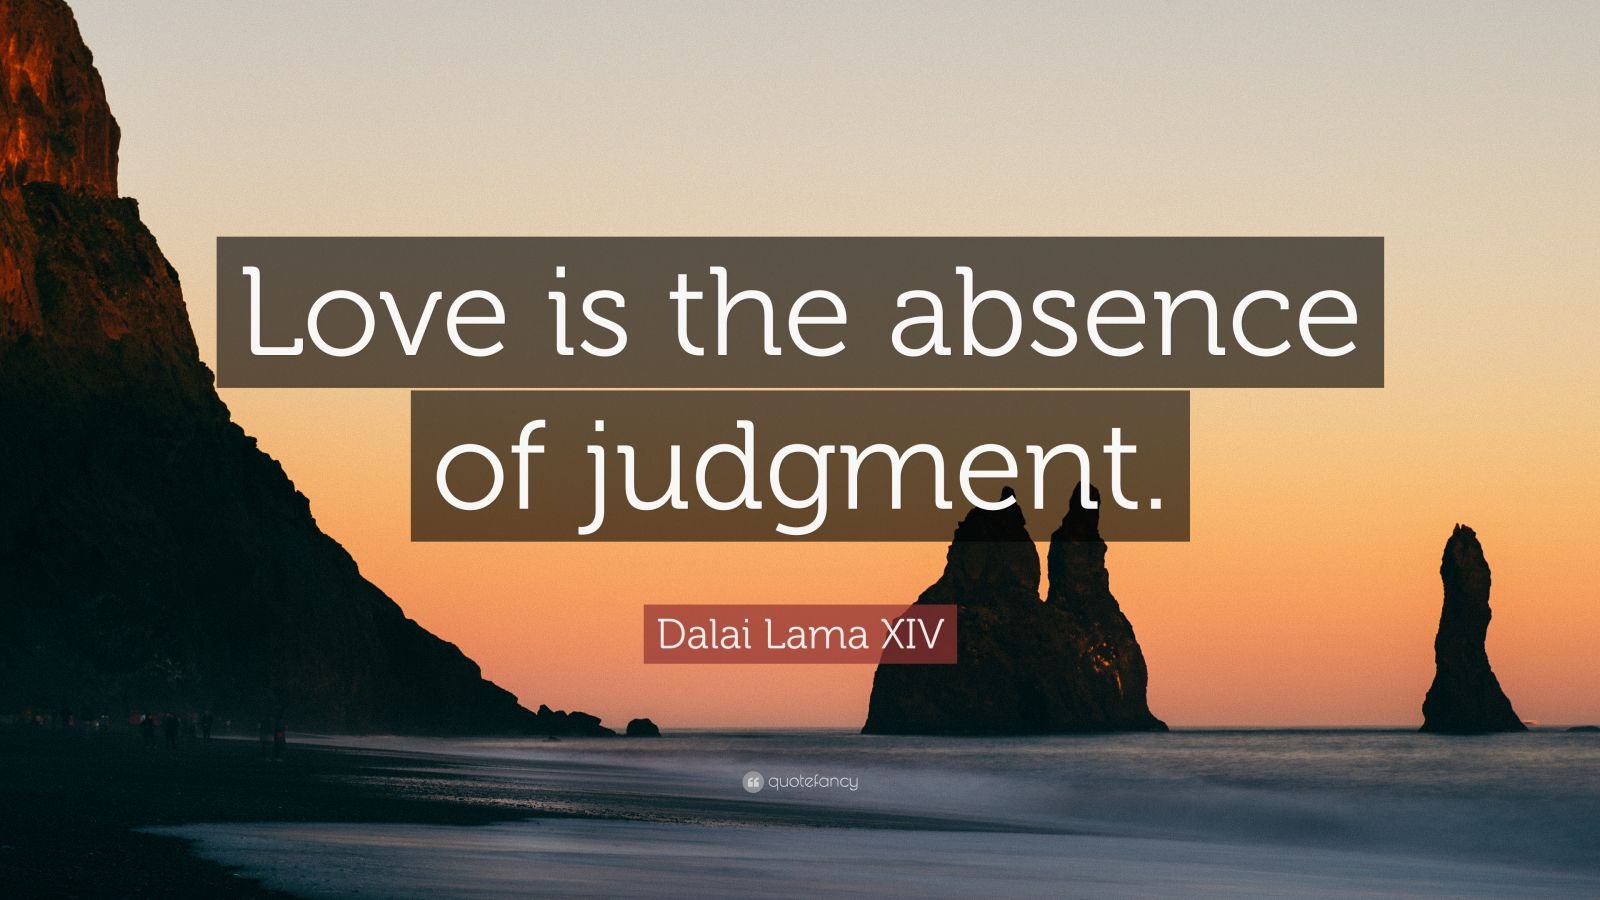 Socrates Wallpaper Quotes Dalai Lama Xiv Quote Love Is The Absence Of Judgment